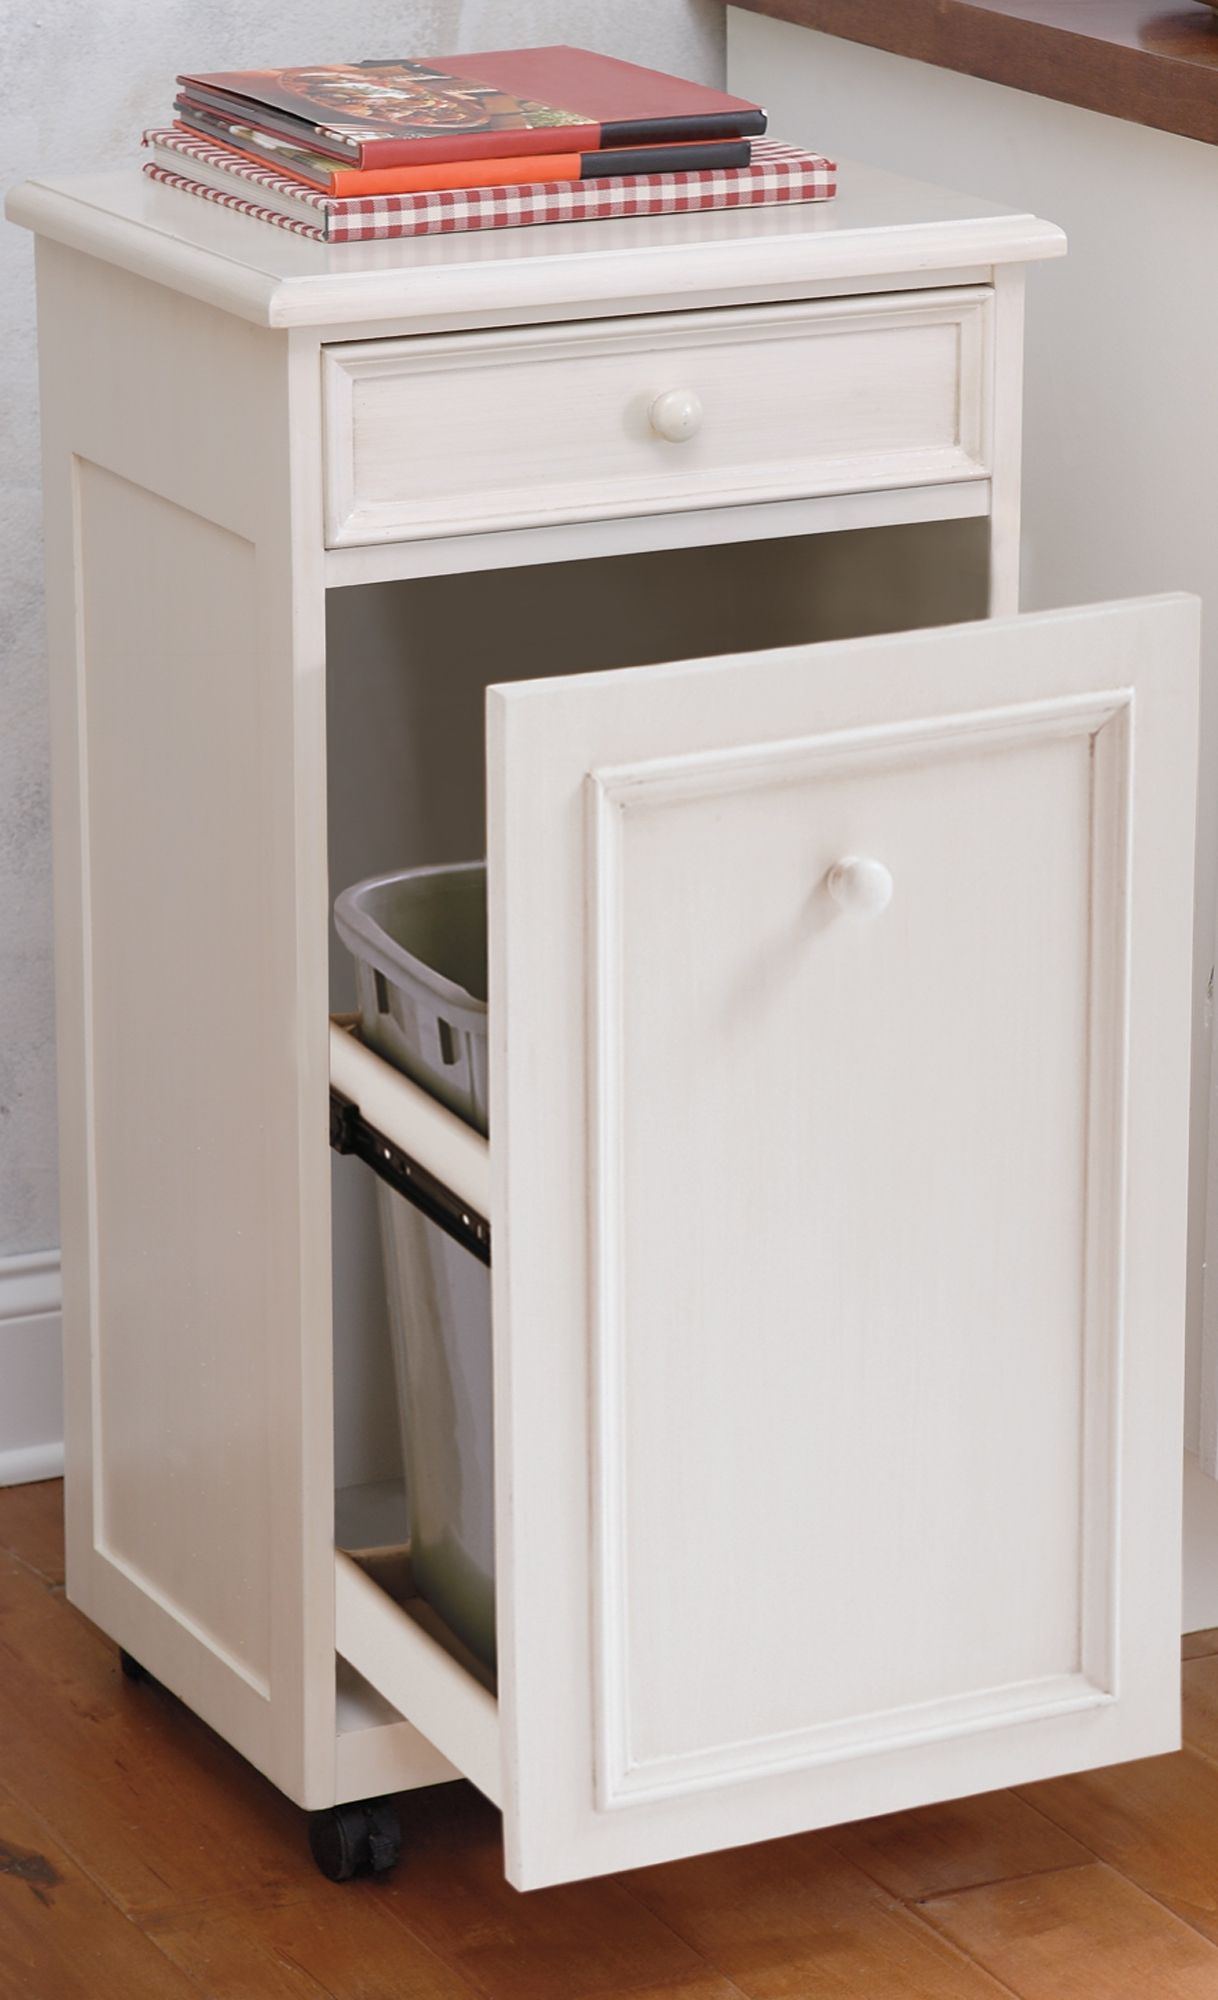 Perfect for a party or everyday use, our Slide-out Trash Bin has all the right components. It moves so easily, making it wonderfully convenient.